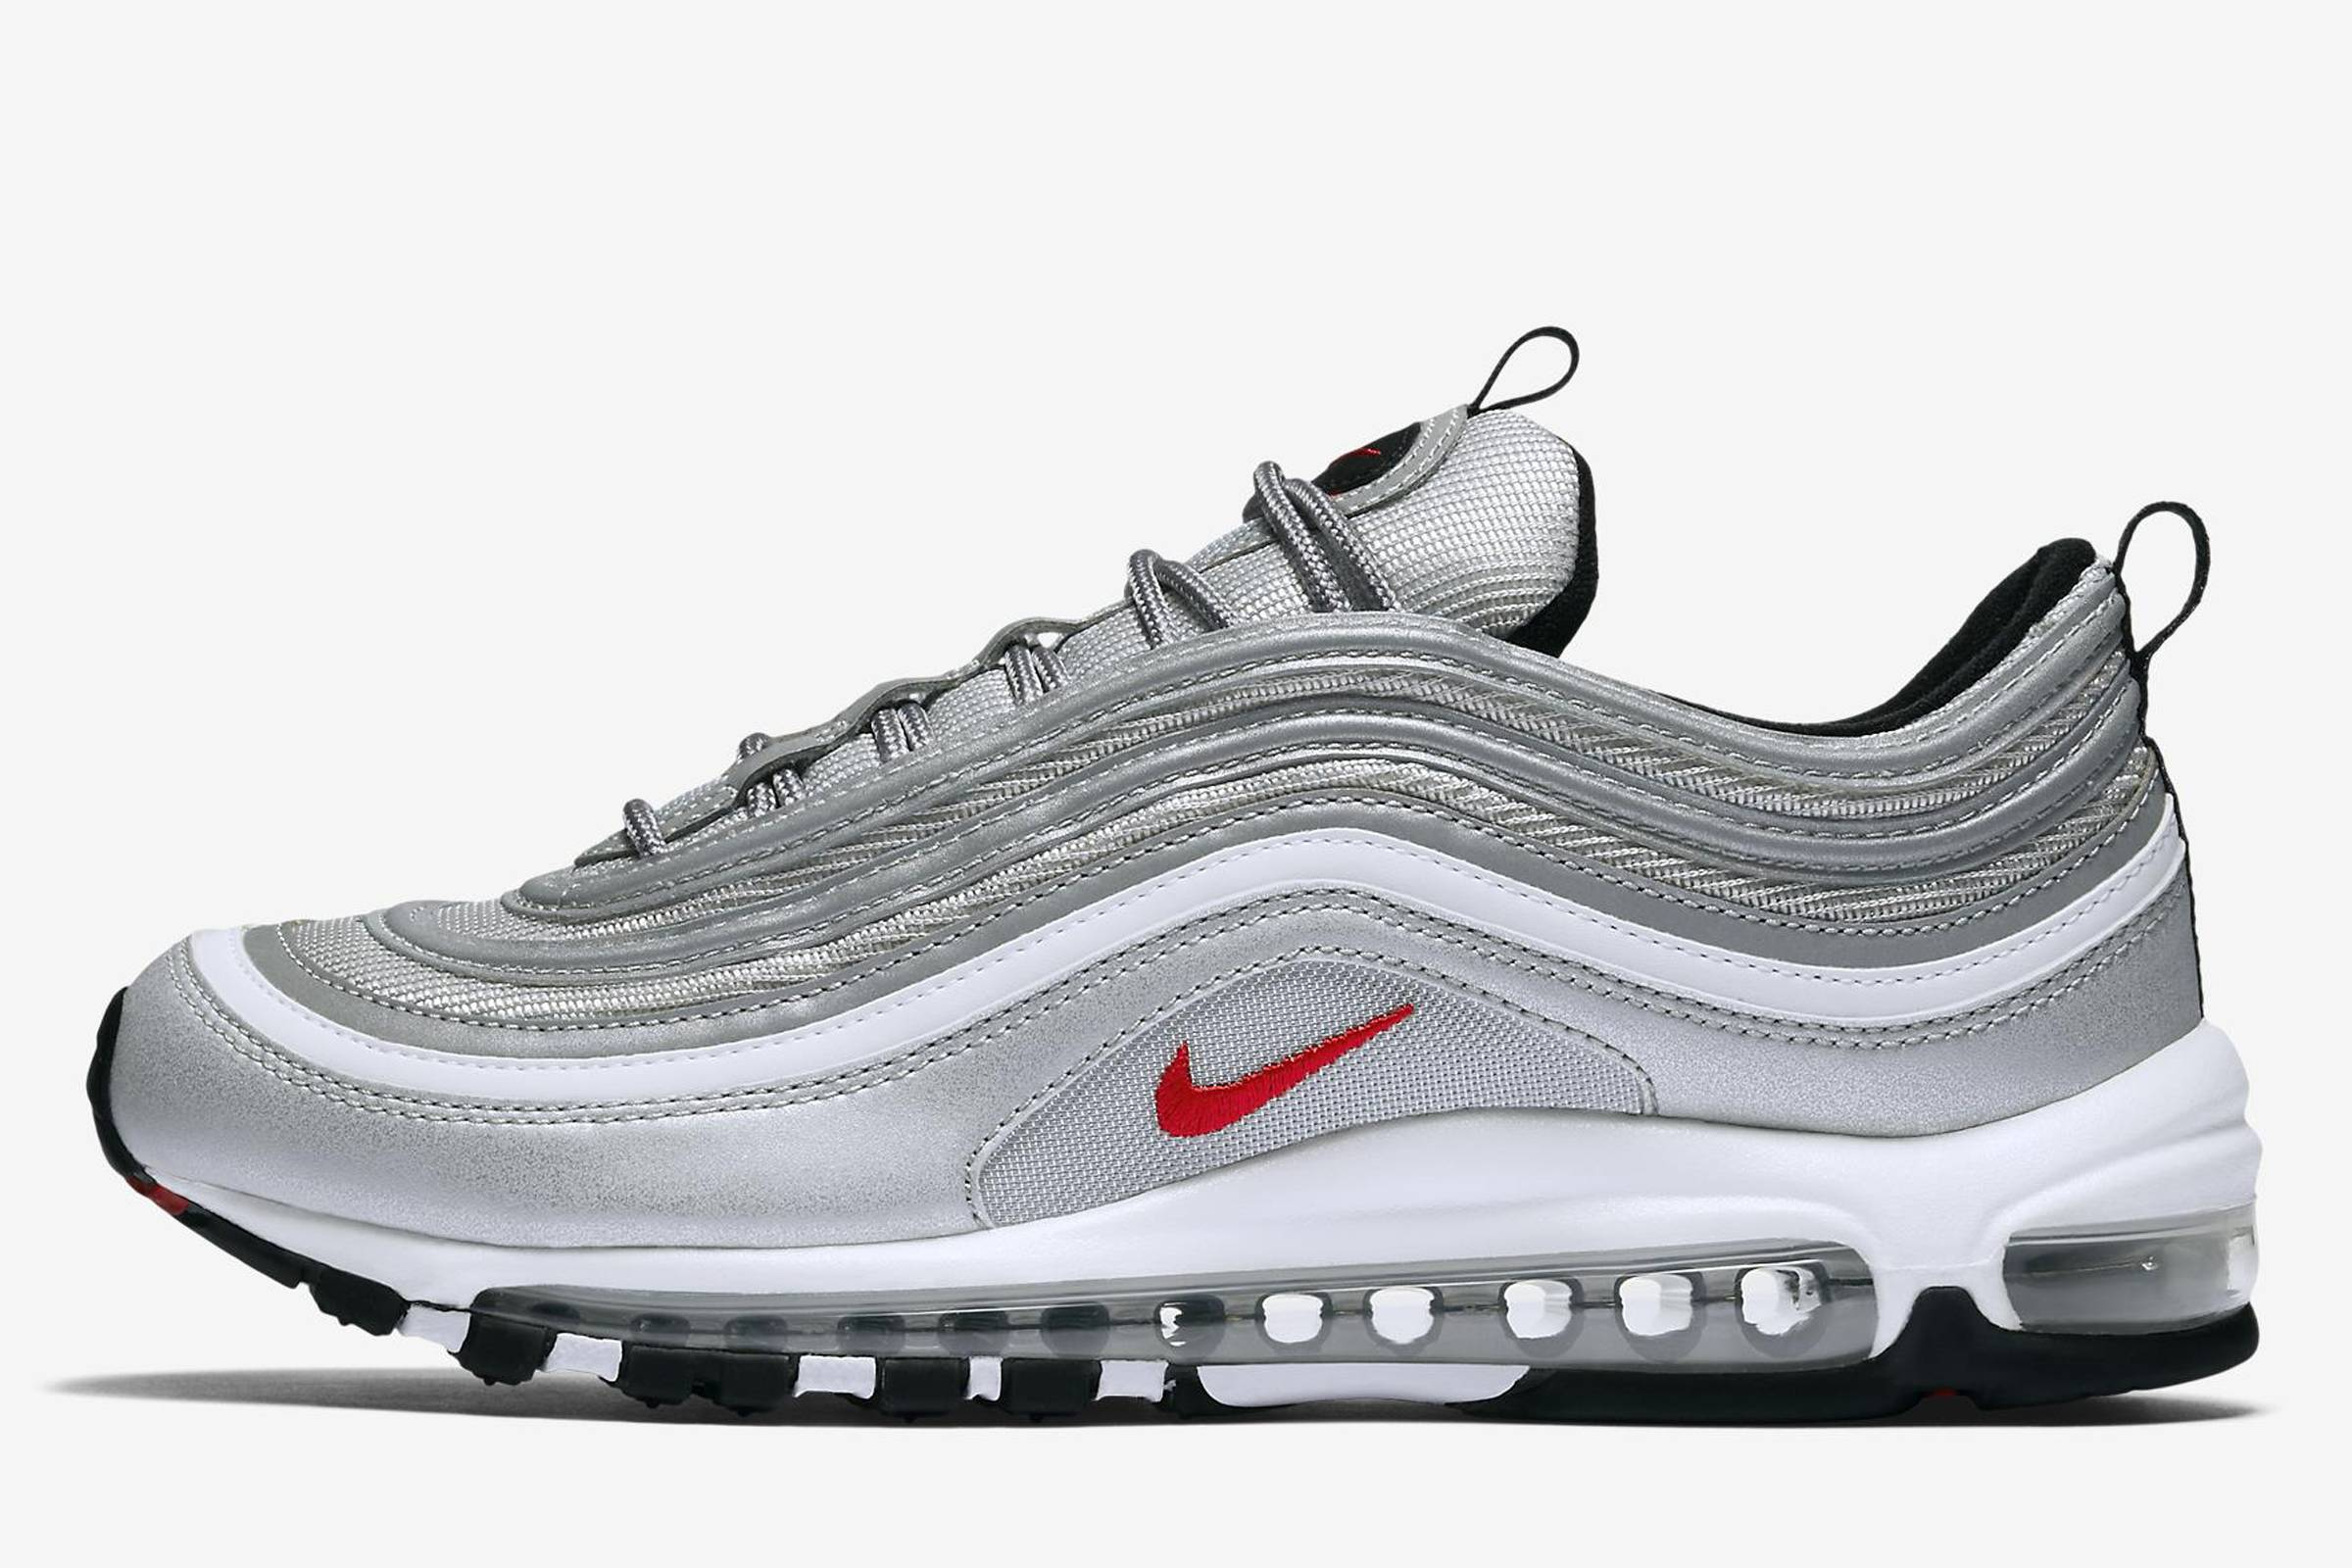 sale retailer acedd 60245 Seduced by Le Silver: A History of the Air Max 97 | Grailed